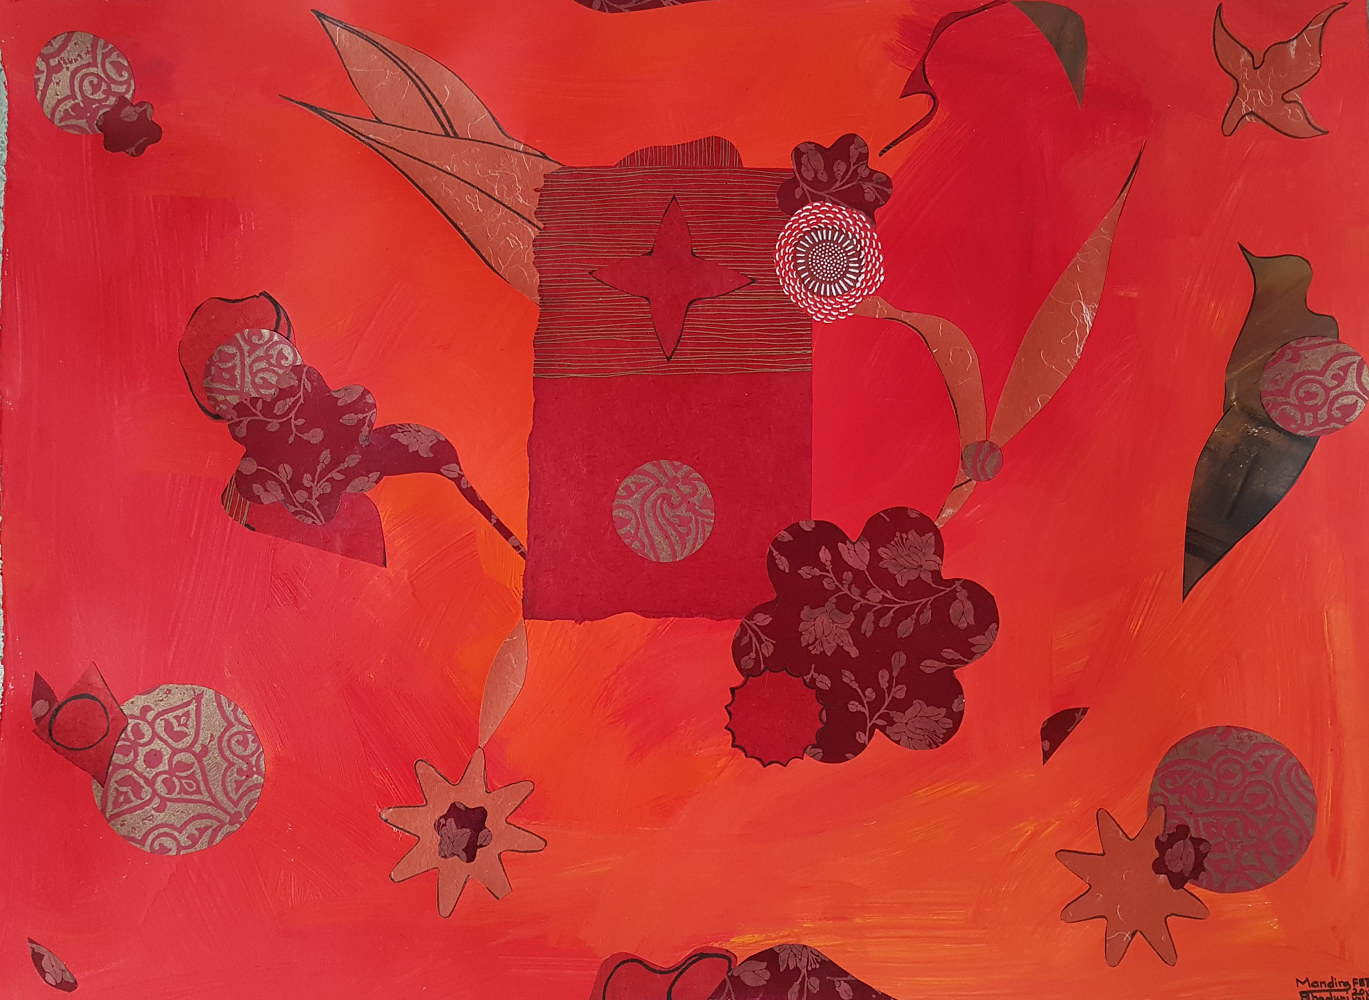 Acrylic painting Red by Mandira Bhaduri